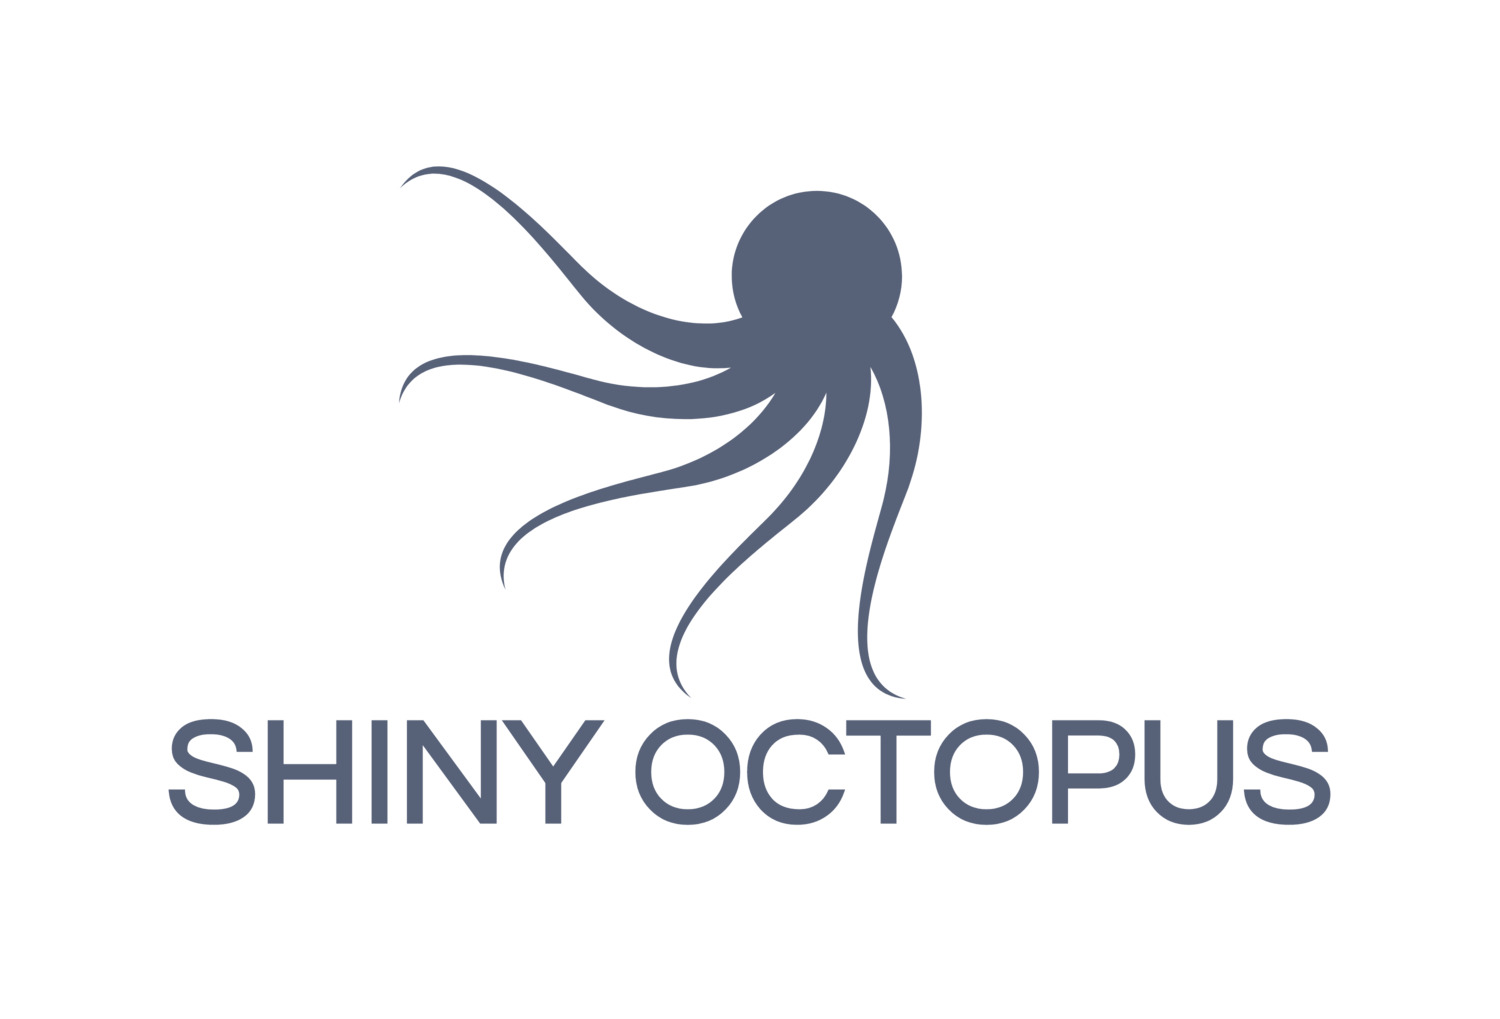 Shiny Octopus